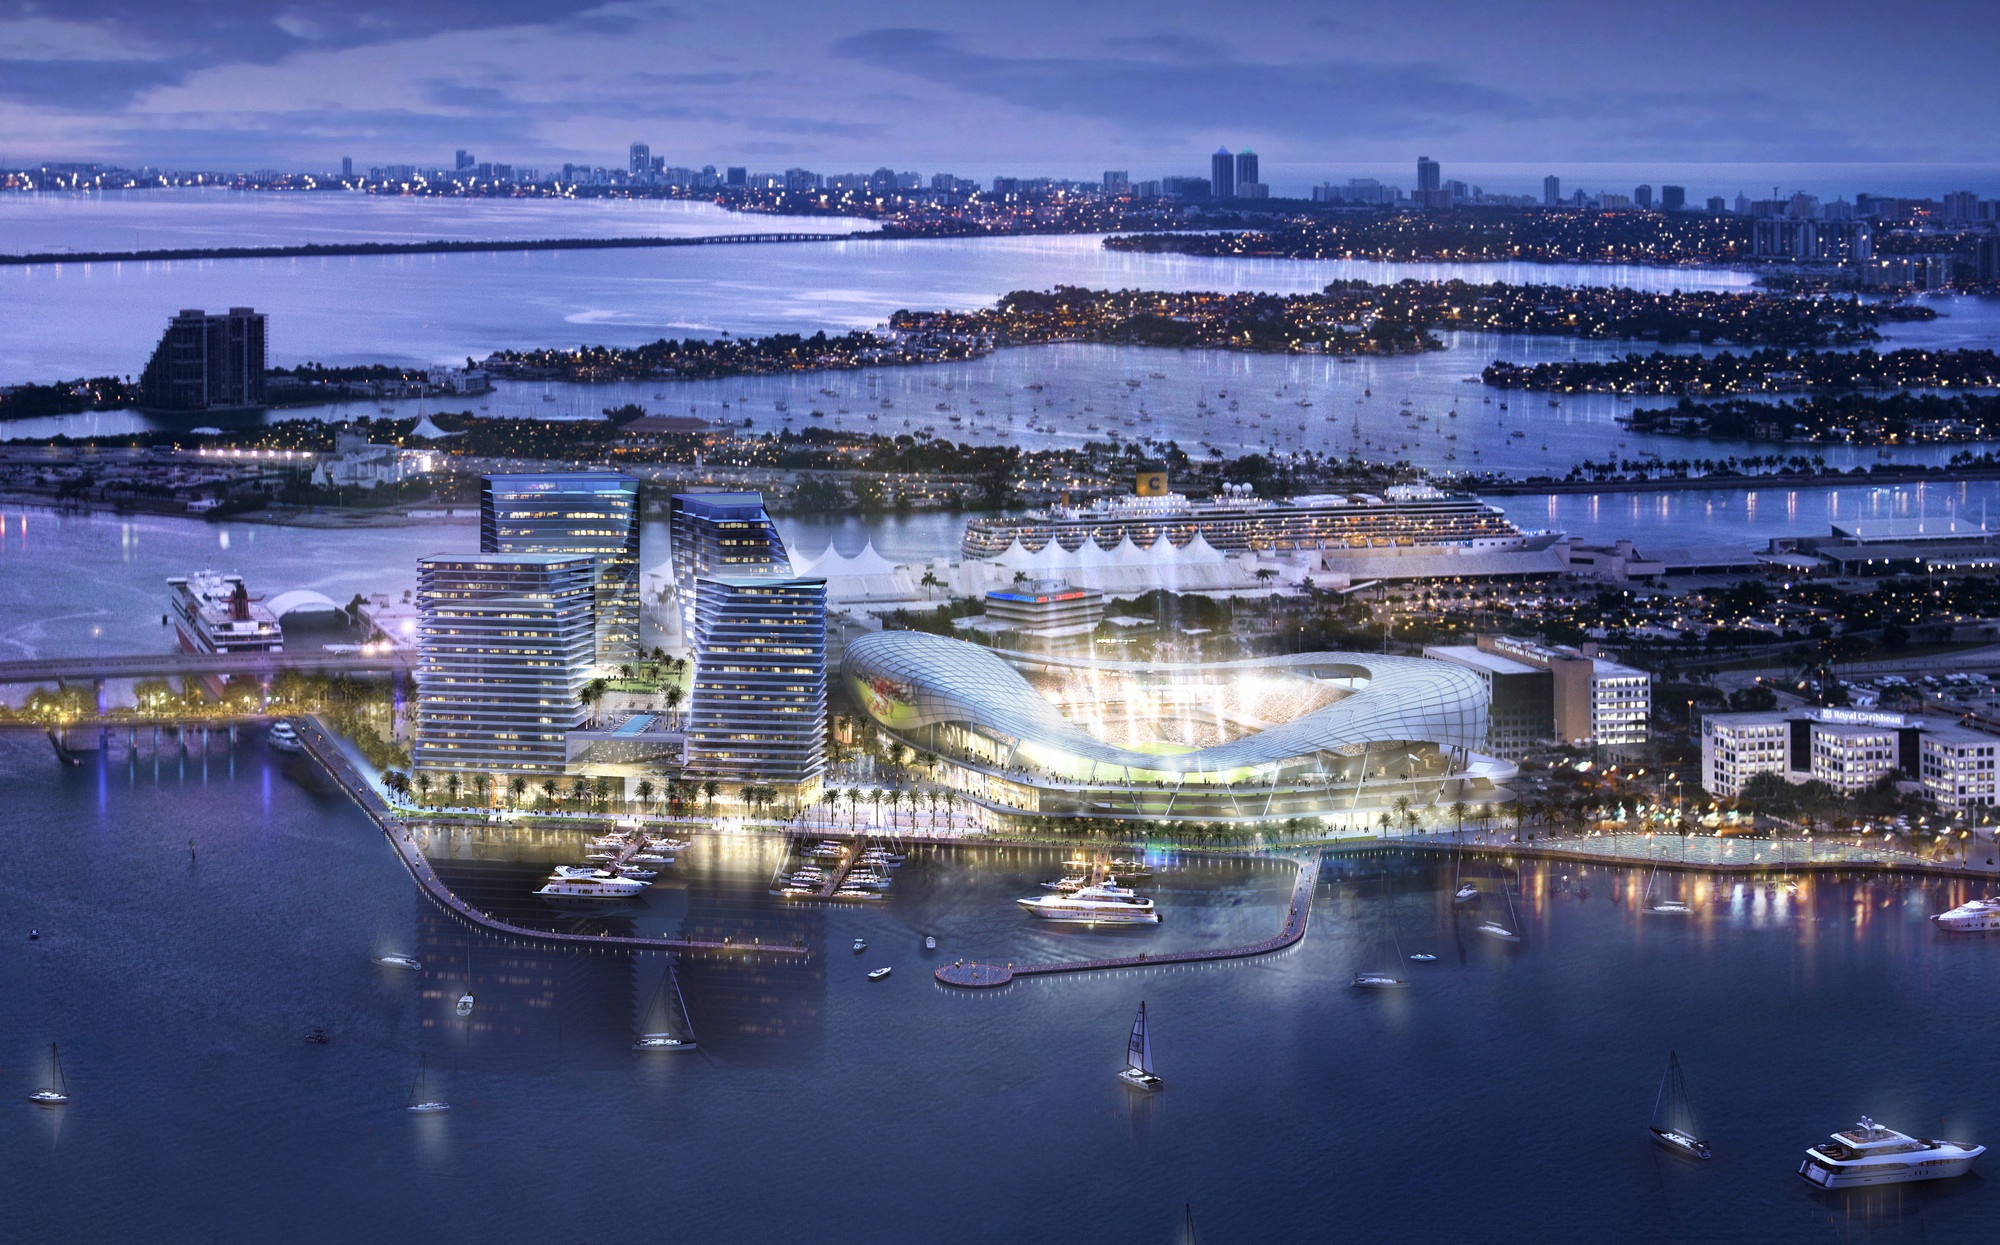 David Beckham's Plan for Miami Stadium Sparks Argument, The original plans for a stadium at PortMiami are now unlikely to be built. Image © 360 Architecture and Arquitectonica